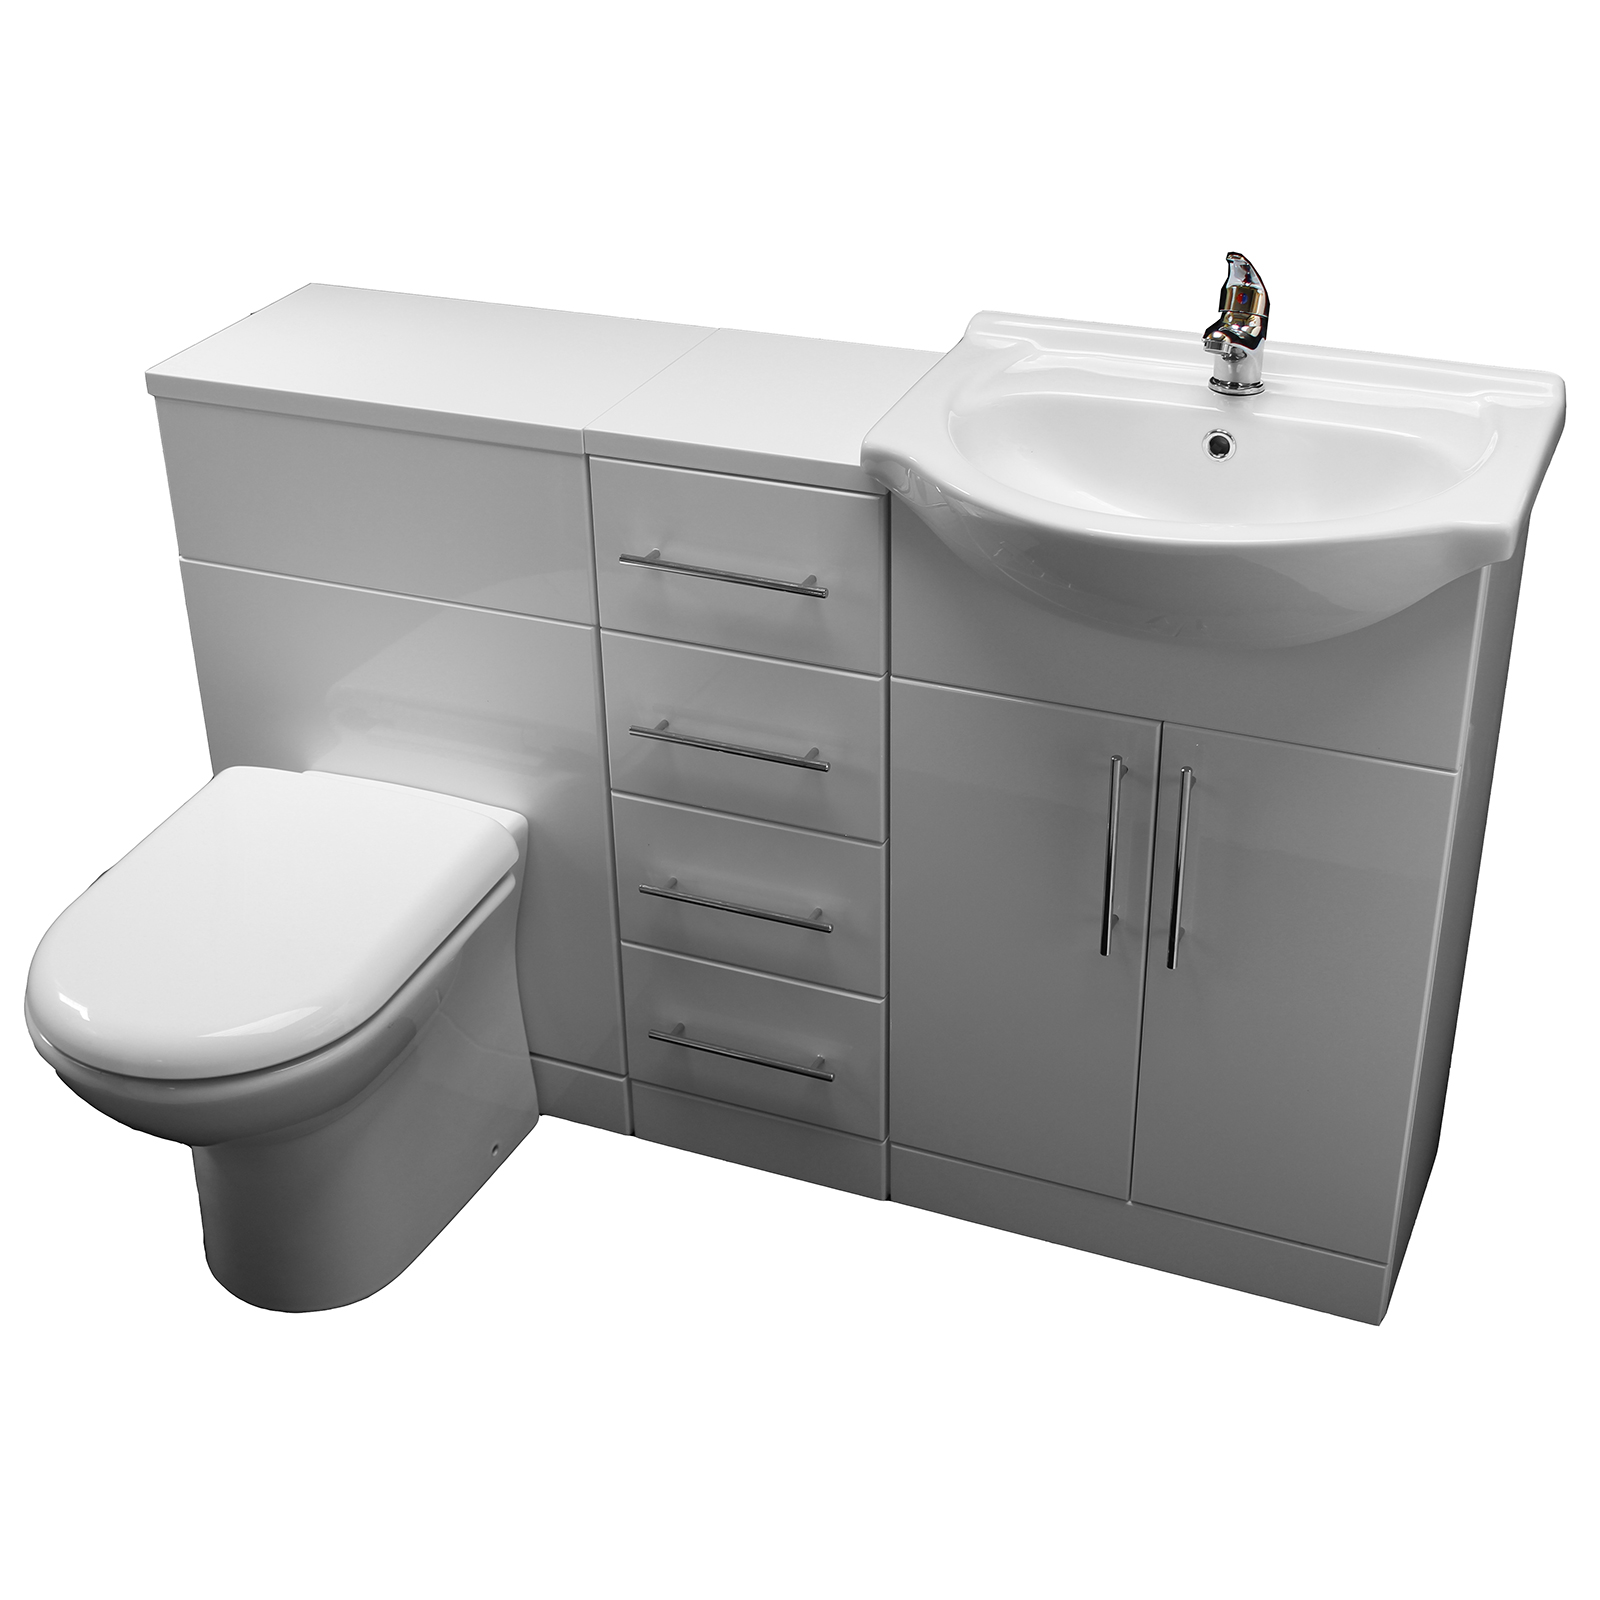 Allbits eden white gloss wc combination 550 vanity unit - Bathroom combination vanity units ...